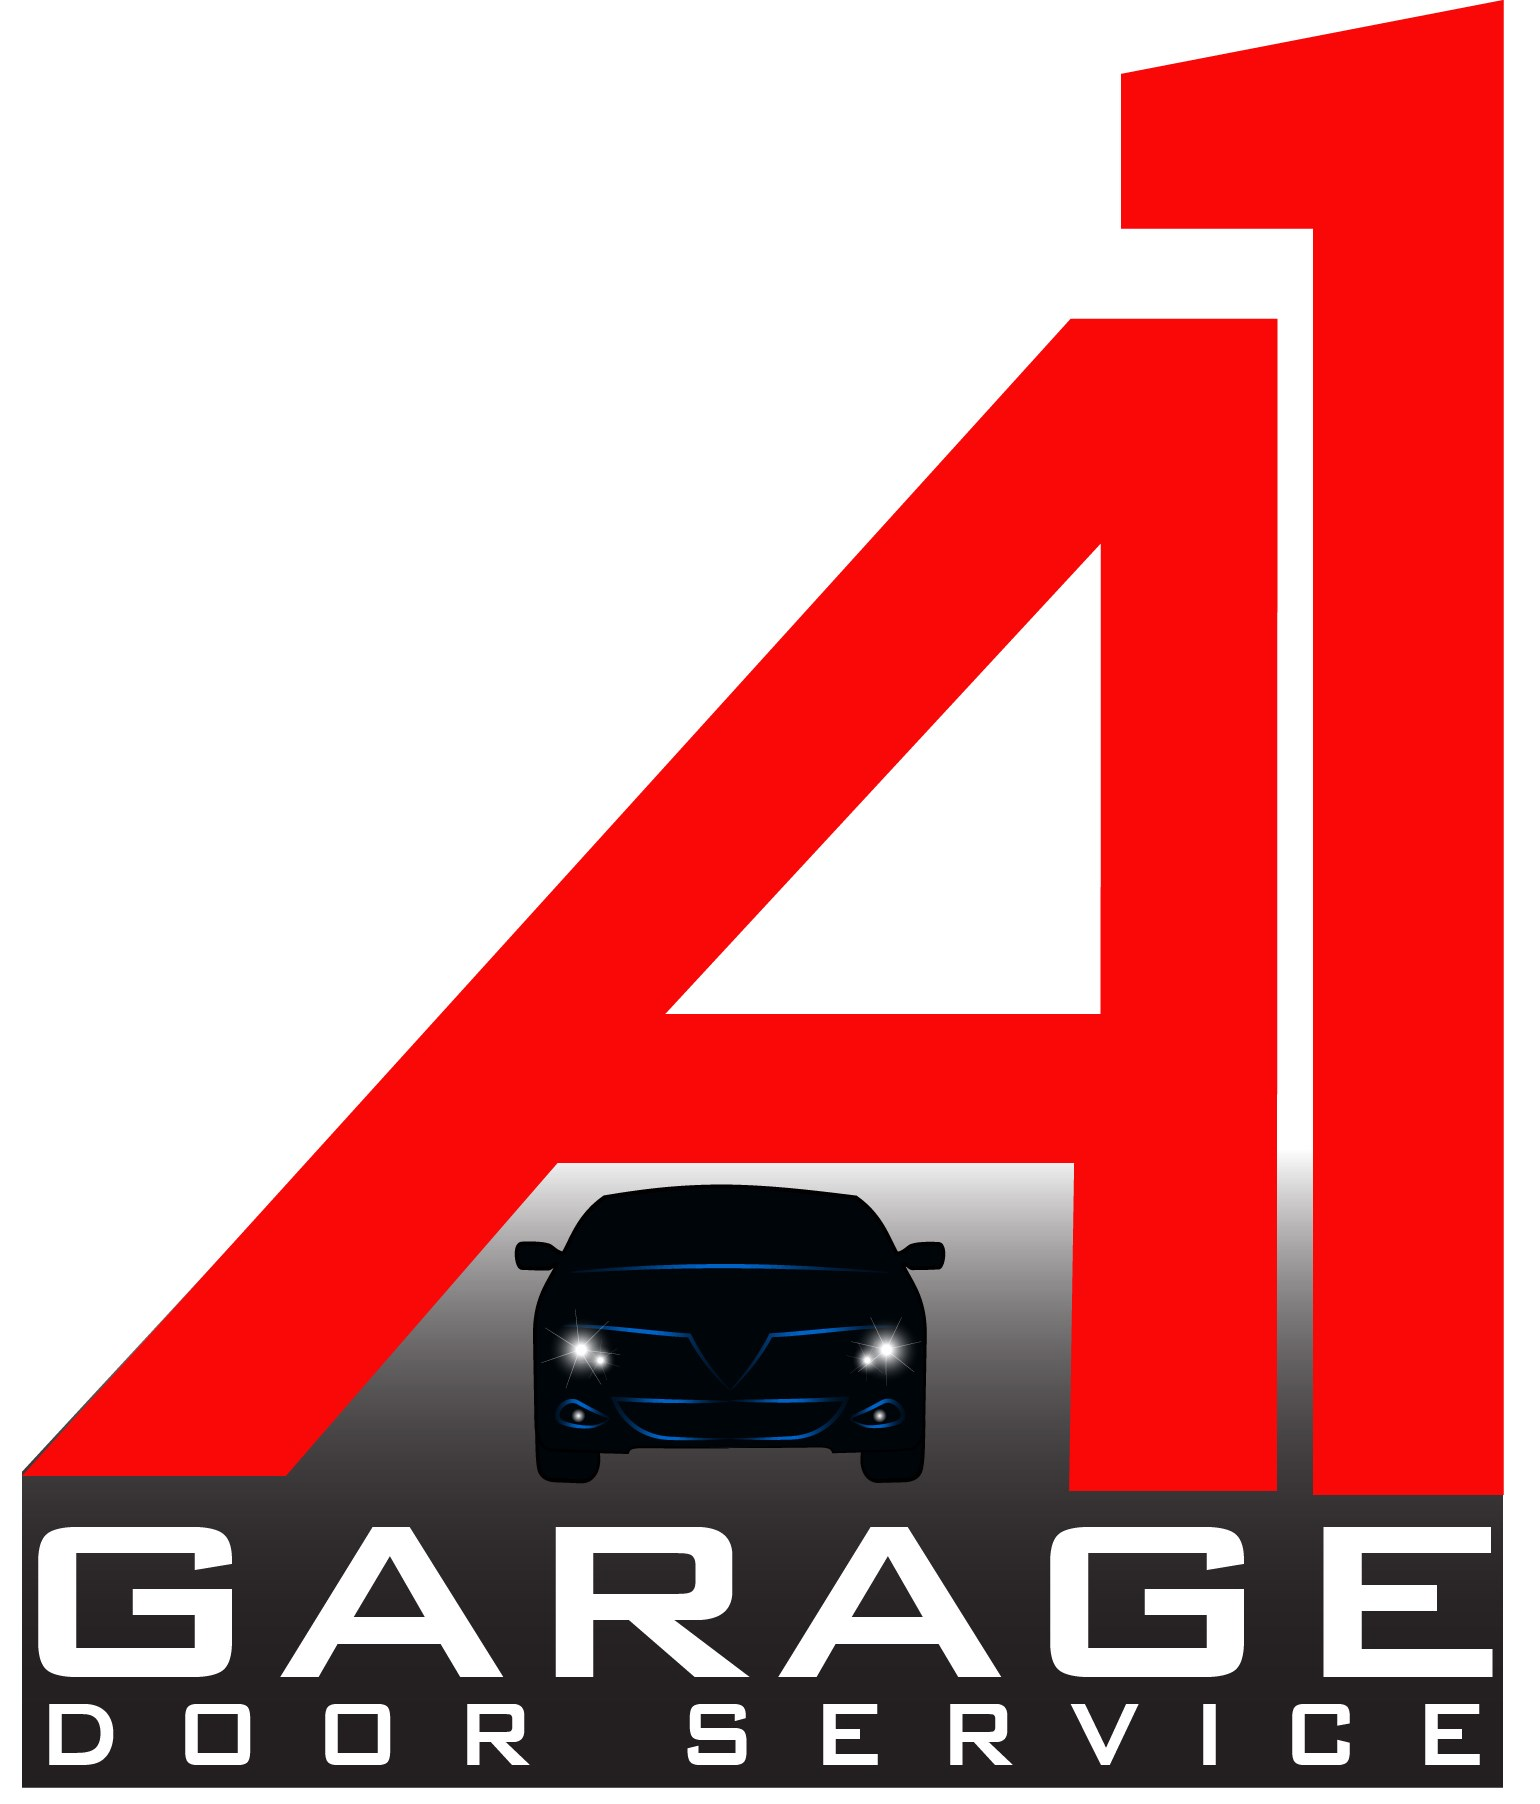 A1 Garage Door Service logo